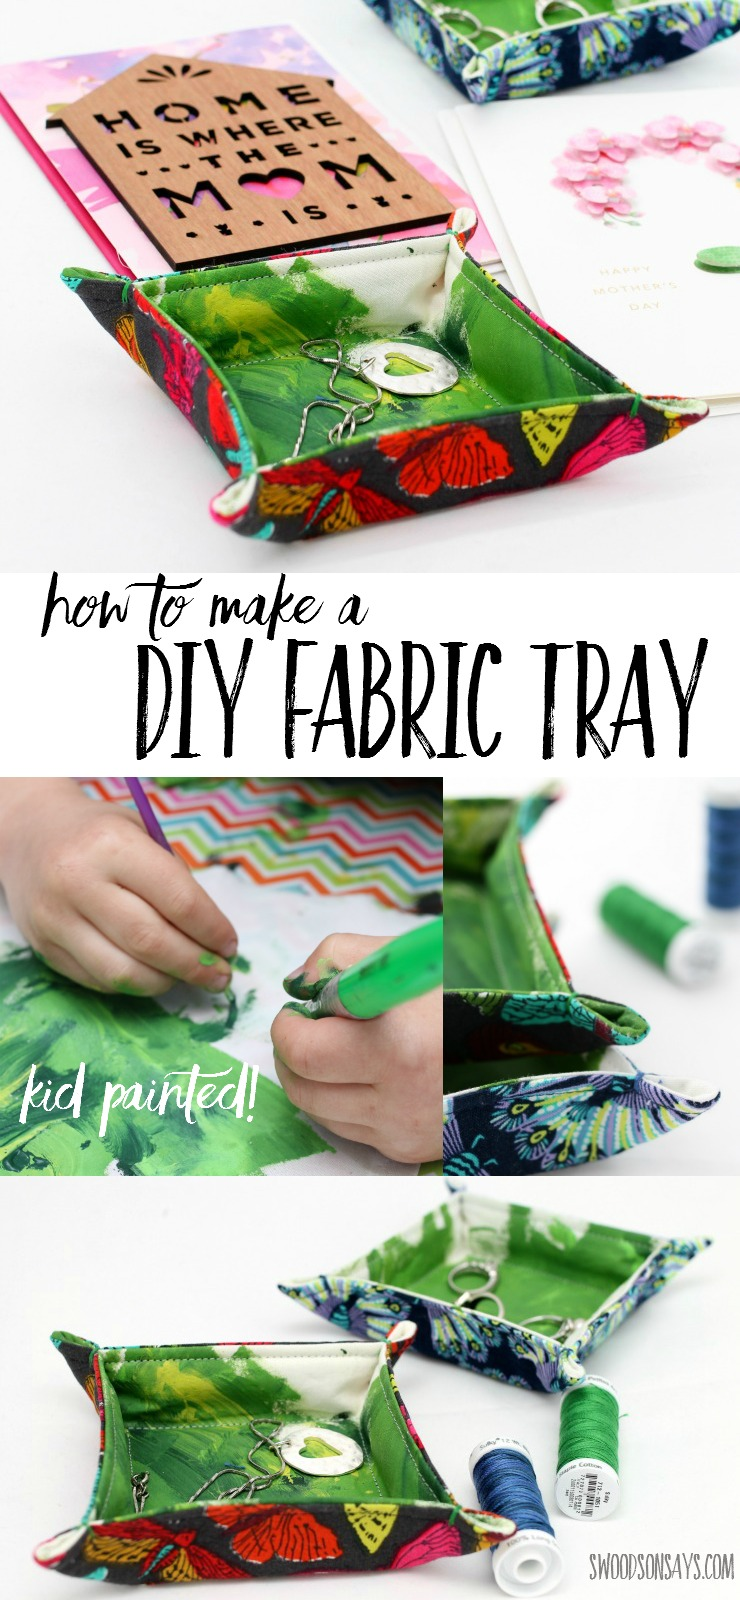 How To Make a Fabric Tray - let your kids join in and paint fabric to make a gift for Mother's Day! Fabric trinket trays are a great beginner sewing project that uses up fabric scraps. #ad #hallmarkformom #socialfabric